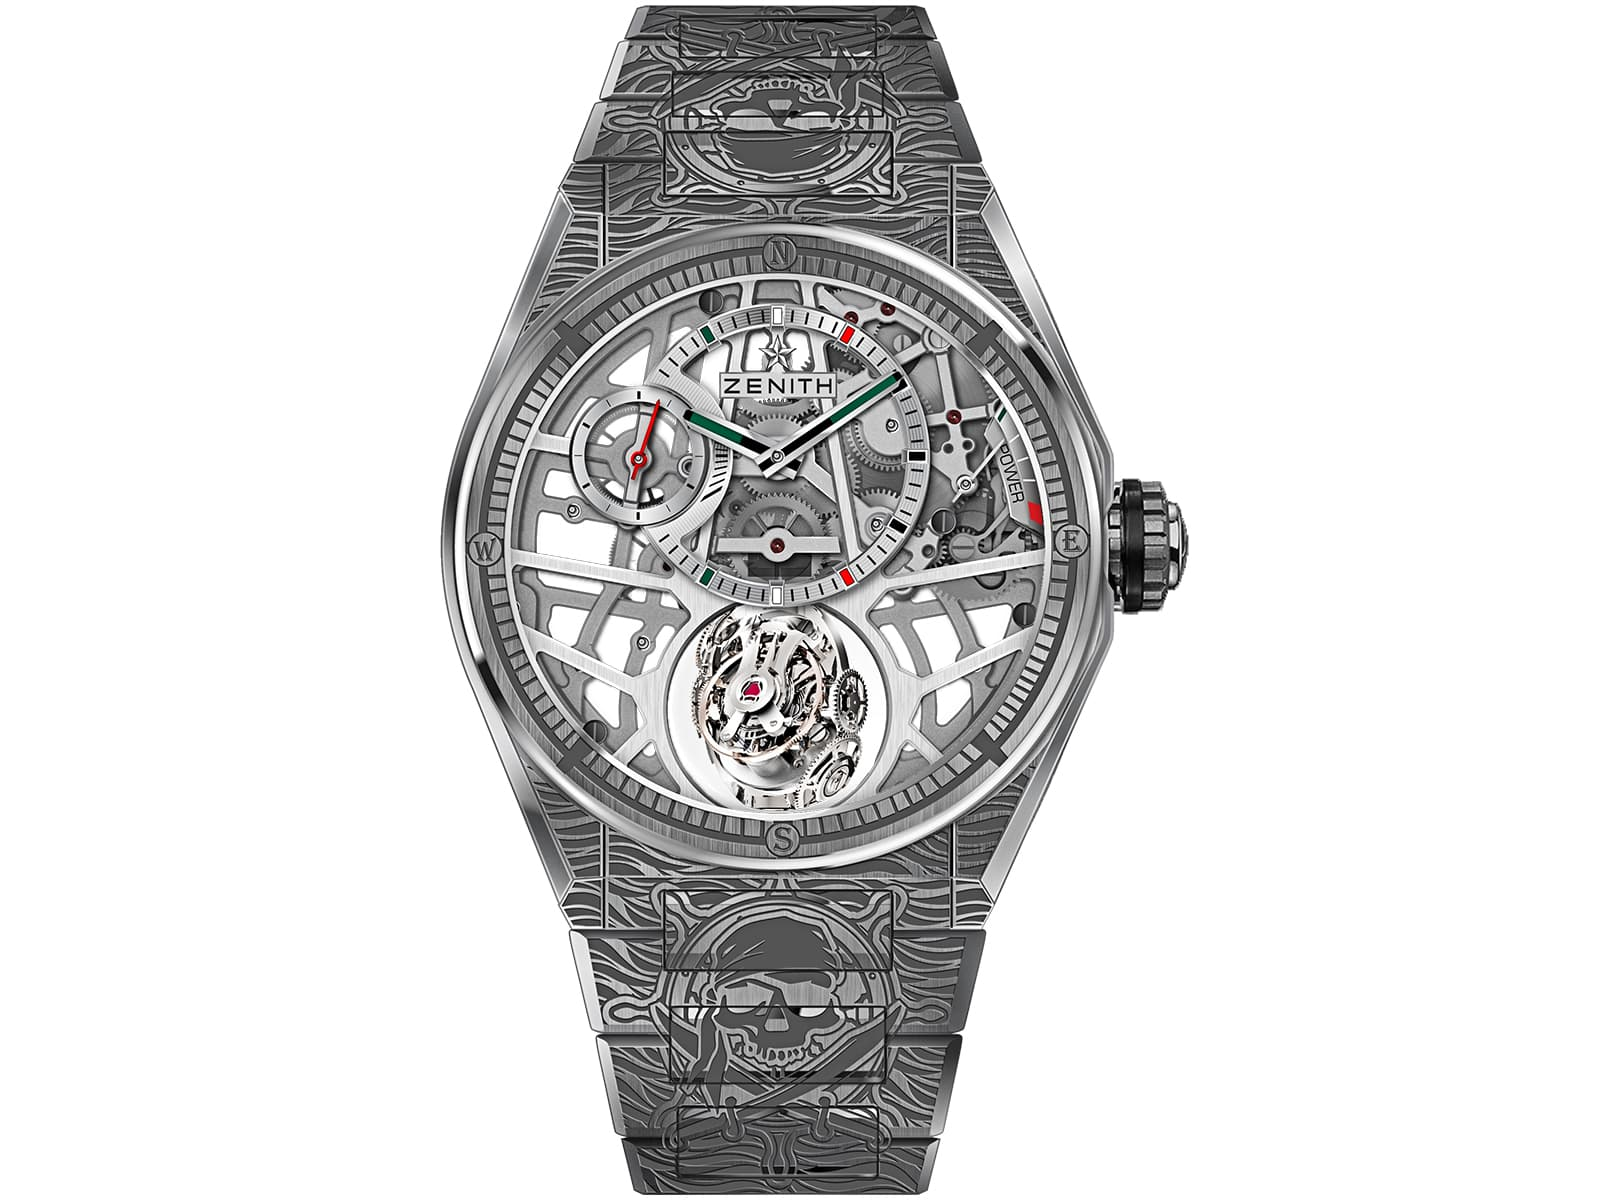 95-9005-8812-80-m9004-zenith-defy-zero-g-pirates-edition-.jpg